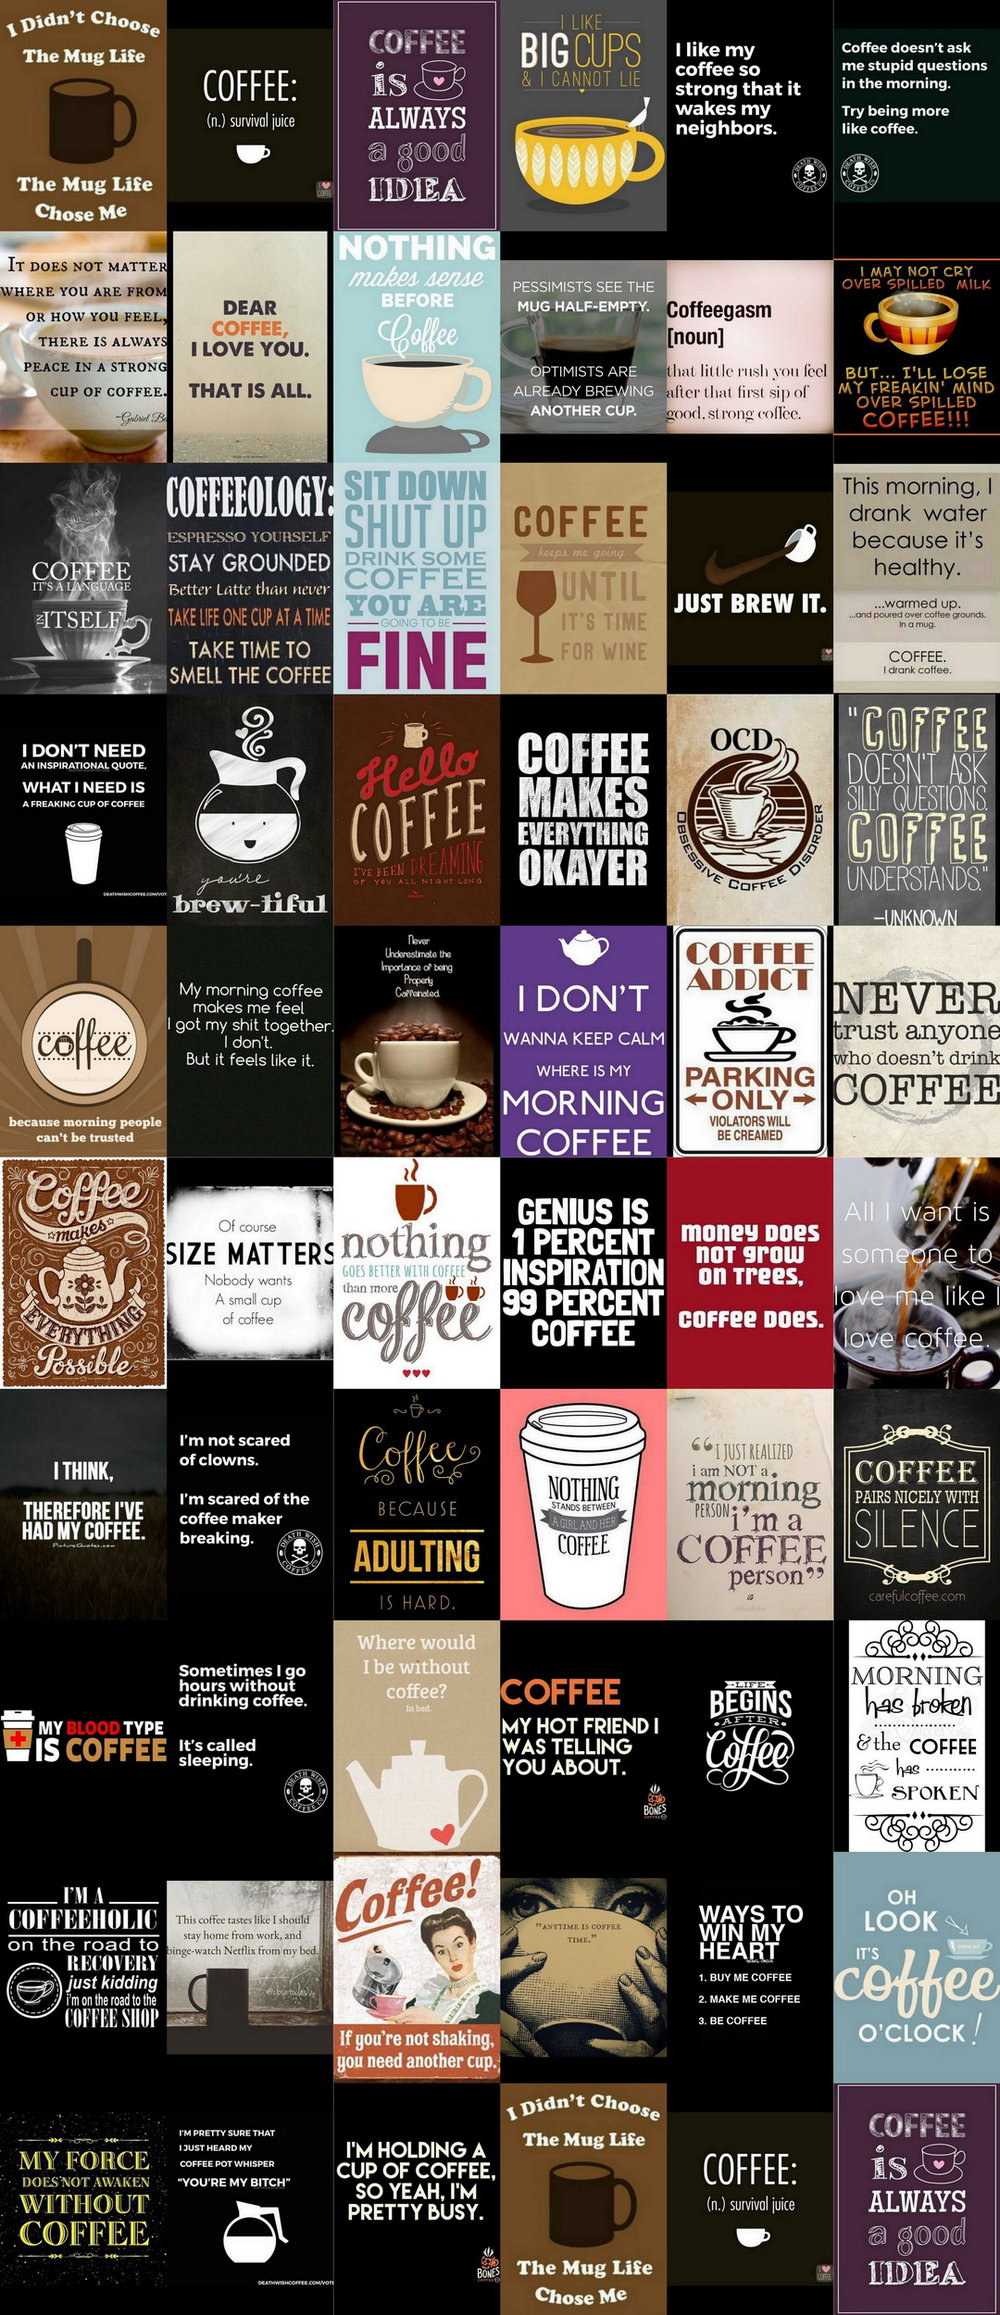 66 Clever Quotes About Coffee